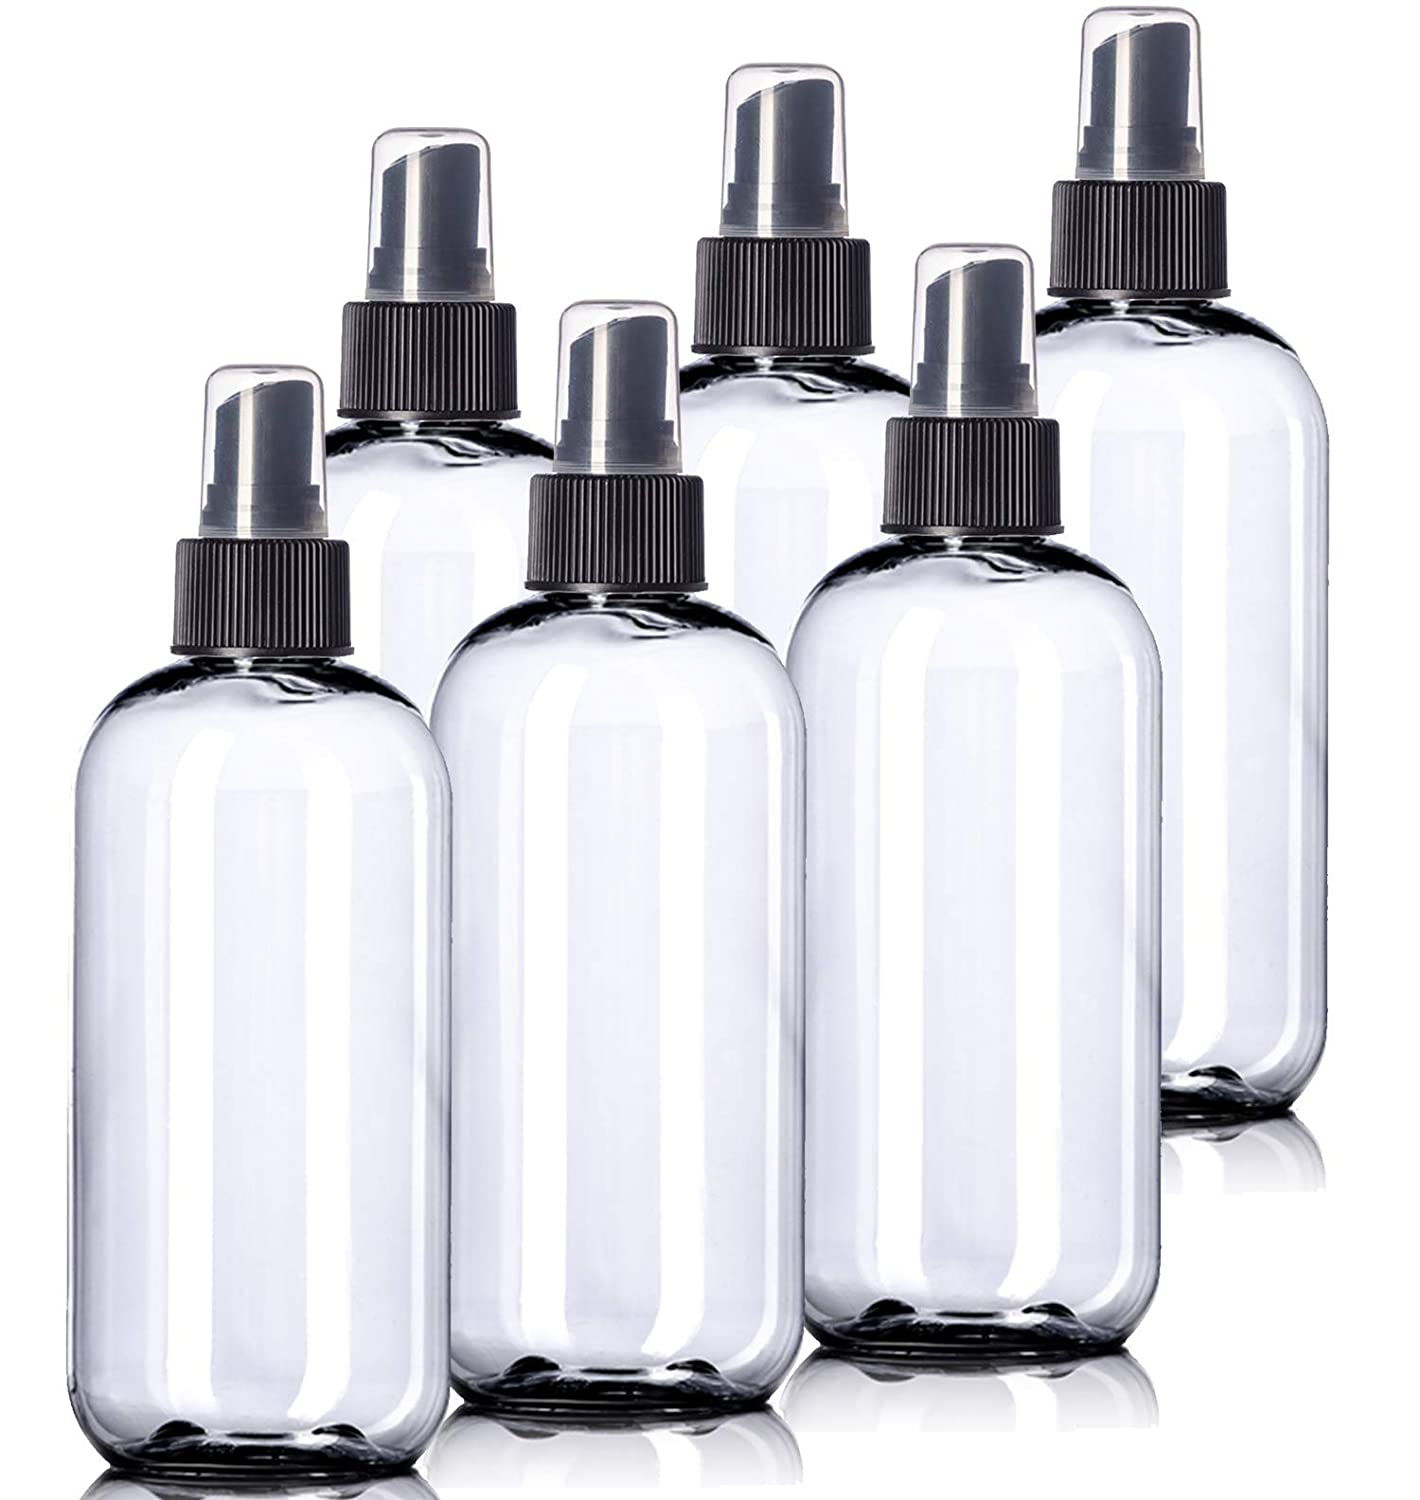 8oz Plastic Clear Bottles (6 Pack) BPA-Free Squeeze Containers with Spray Cap, Labels Included